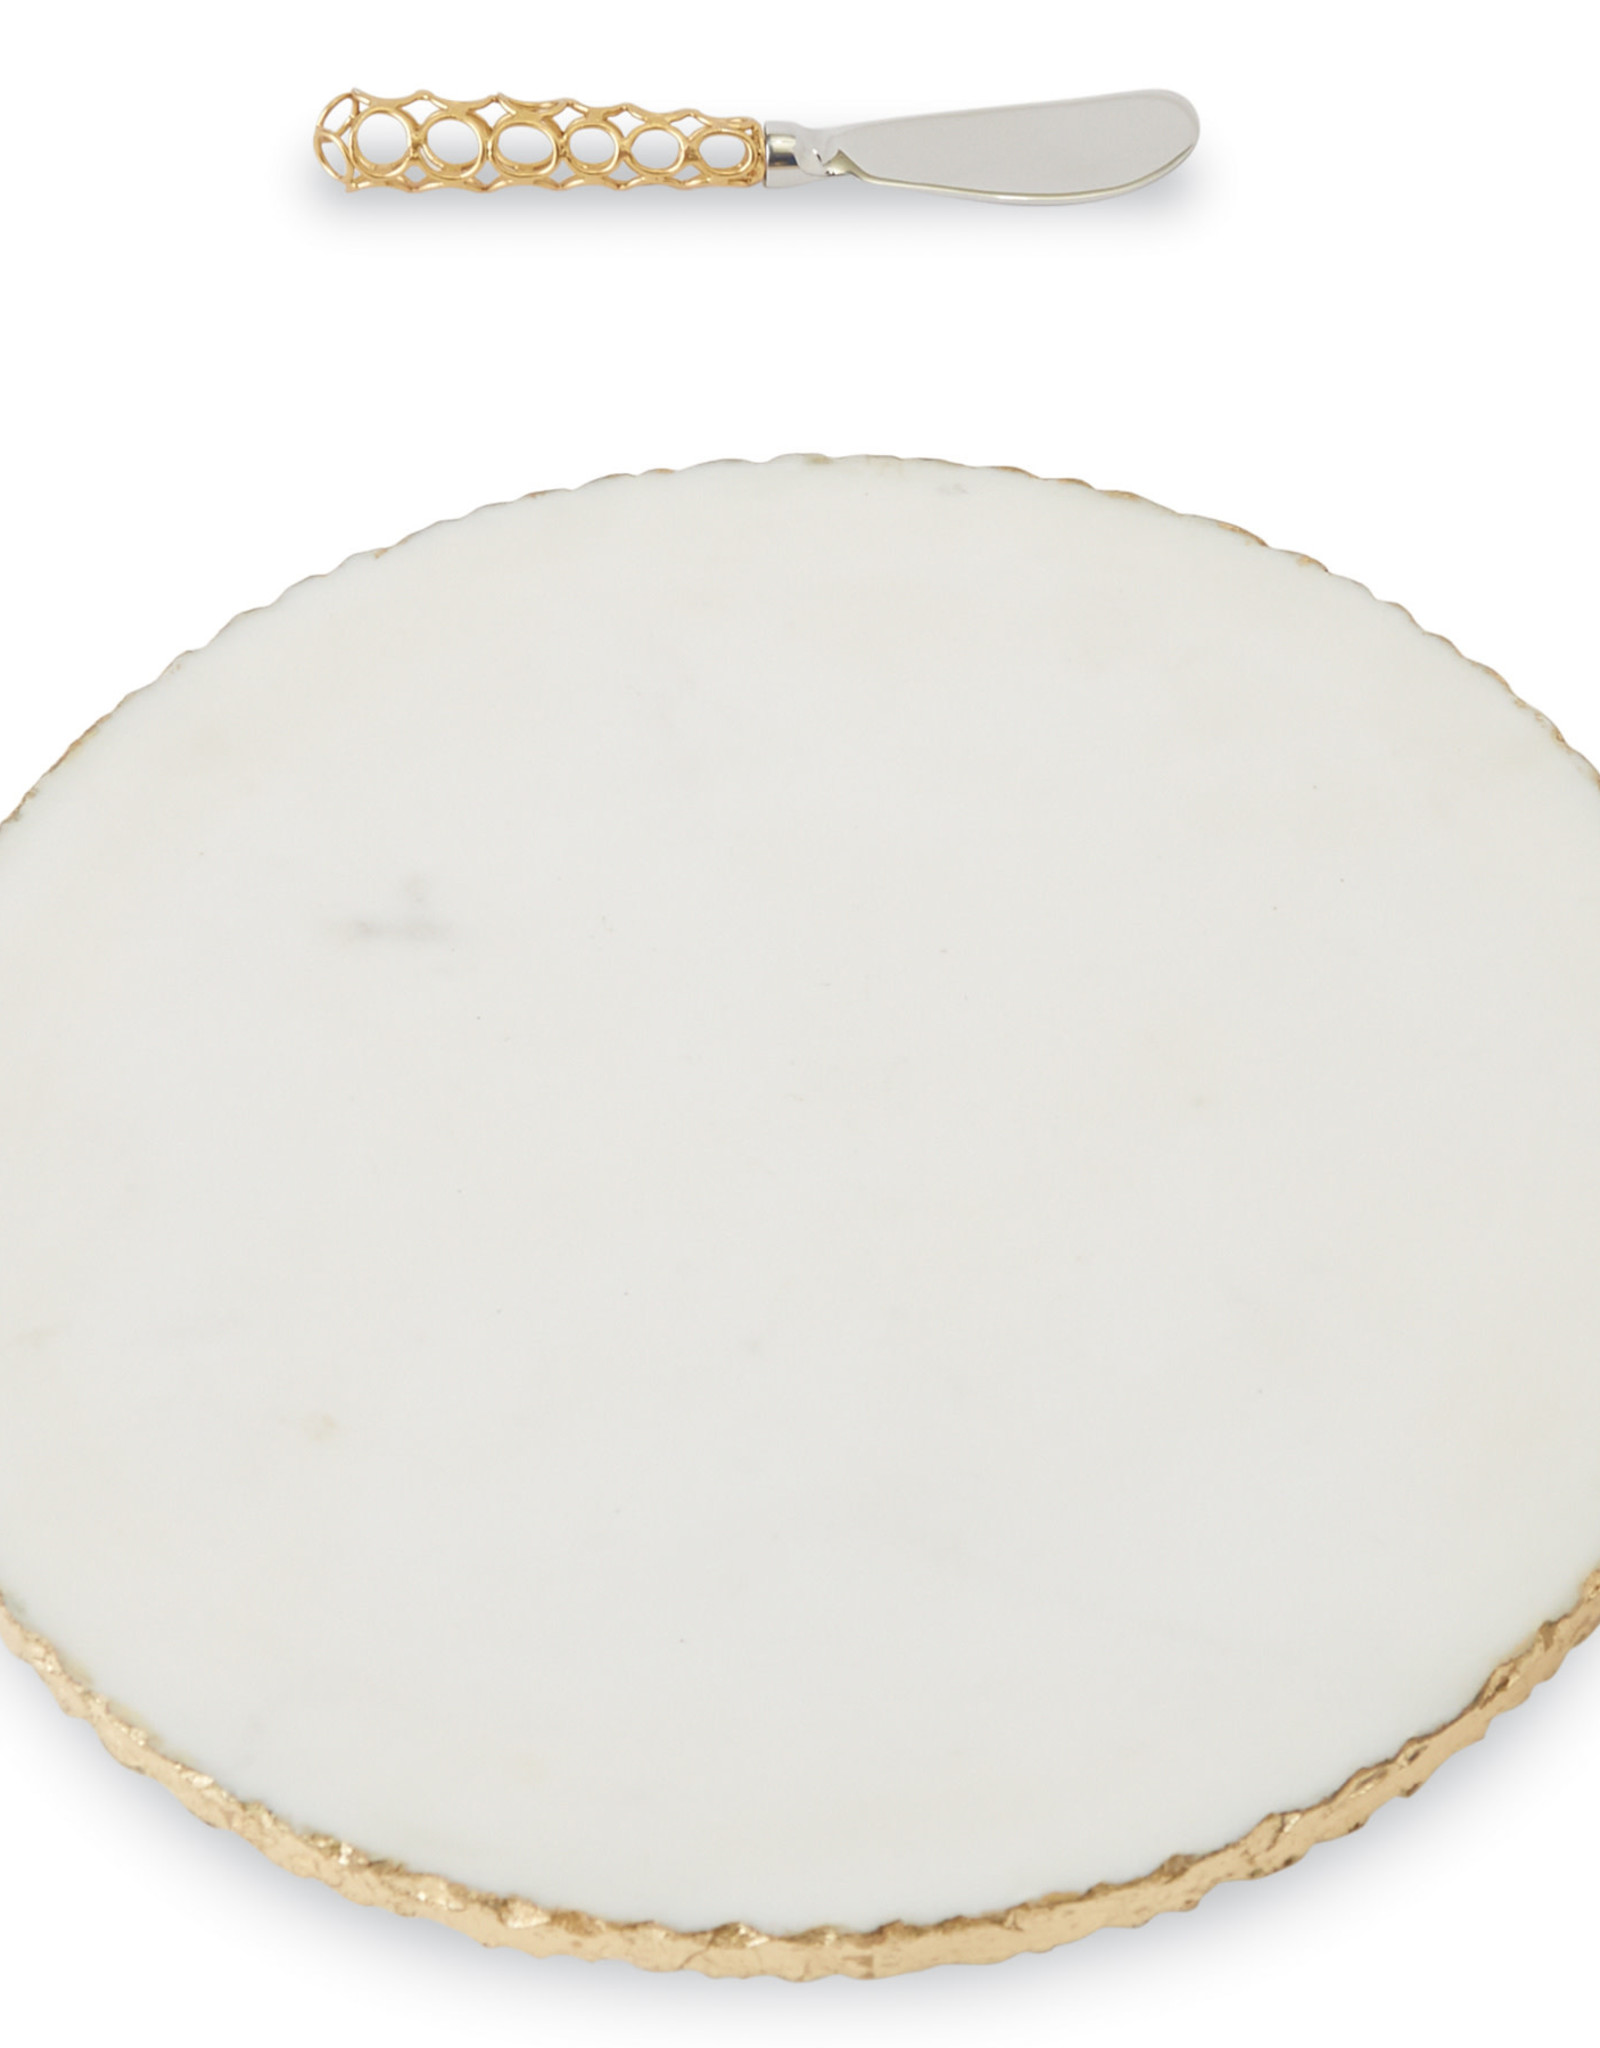 Marble Cheese Board with Spreader